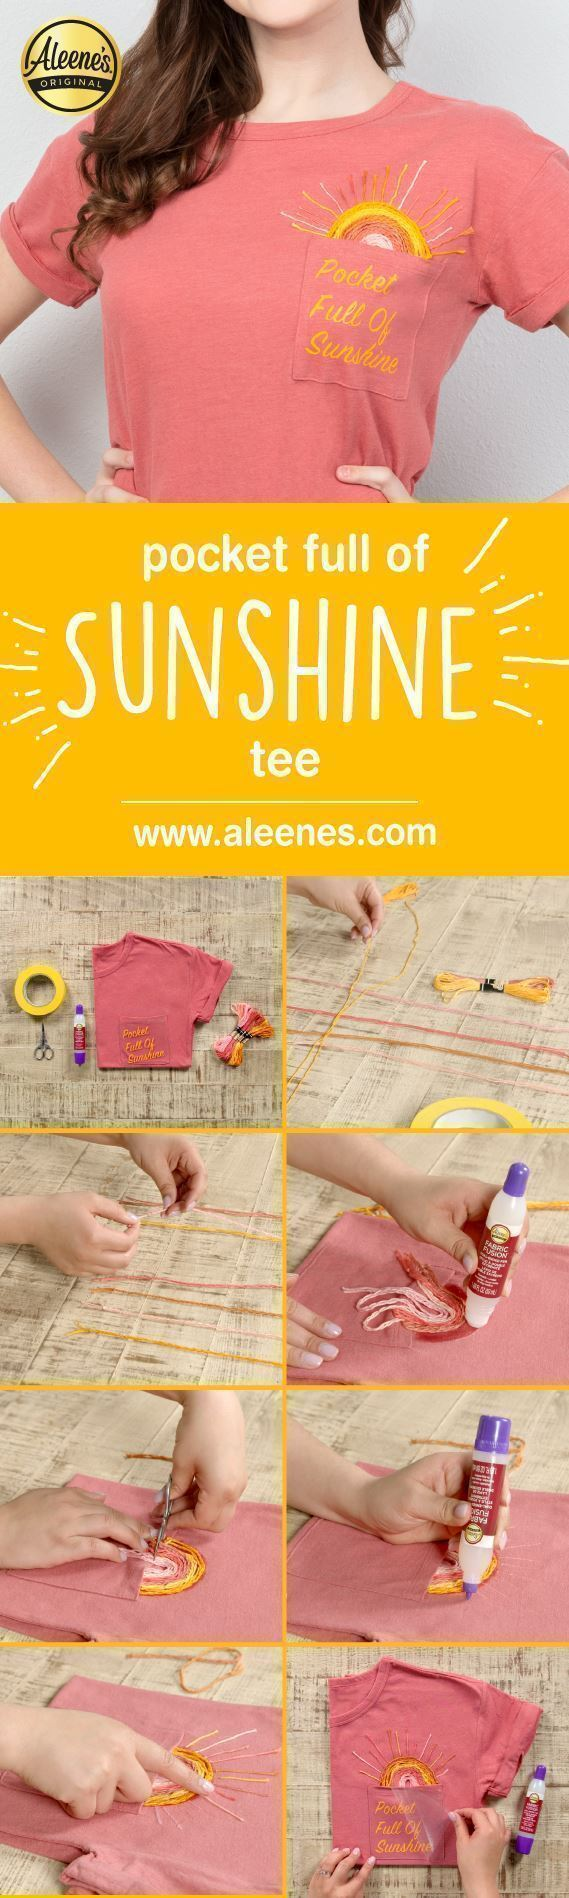 Aleene's Pocket Full of Sunshine Quote Art Tee